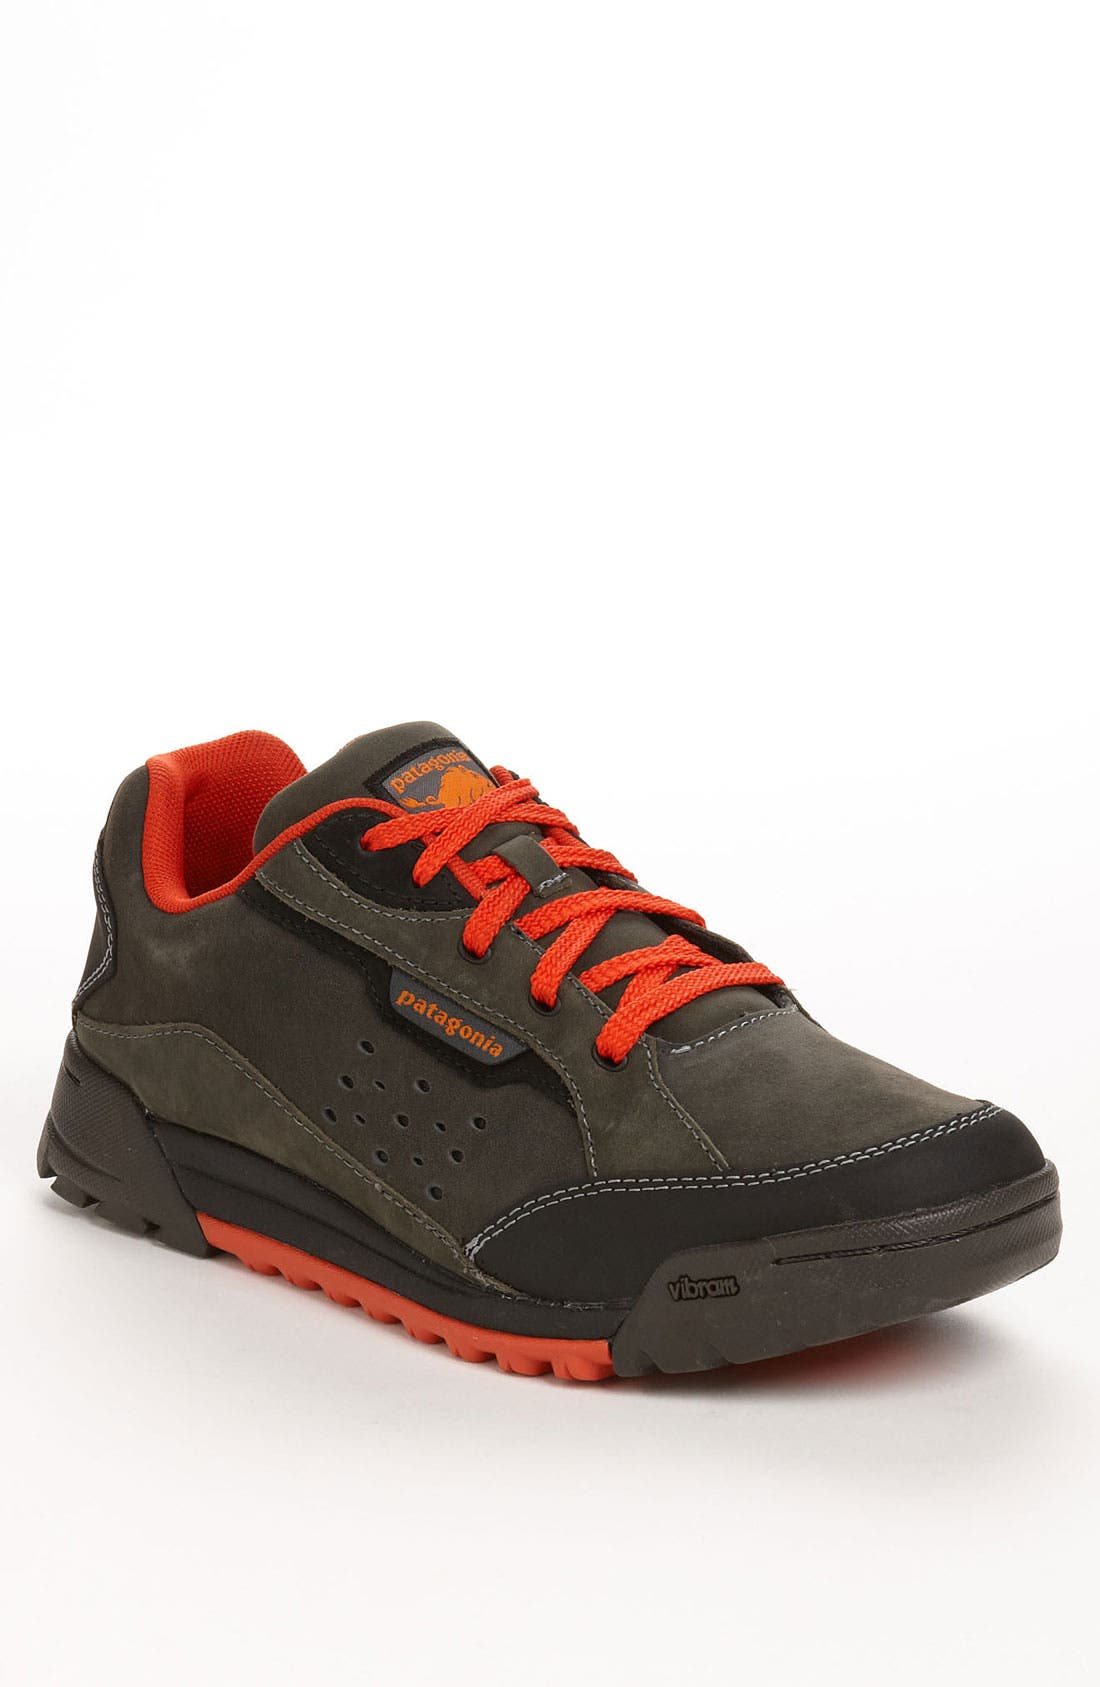 Main Image - Patagonia 'Boaris 2' Walking Shoe (Men)